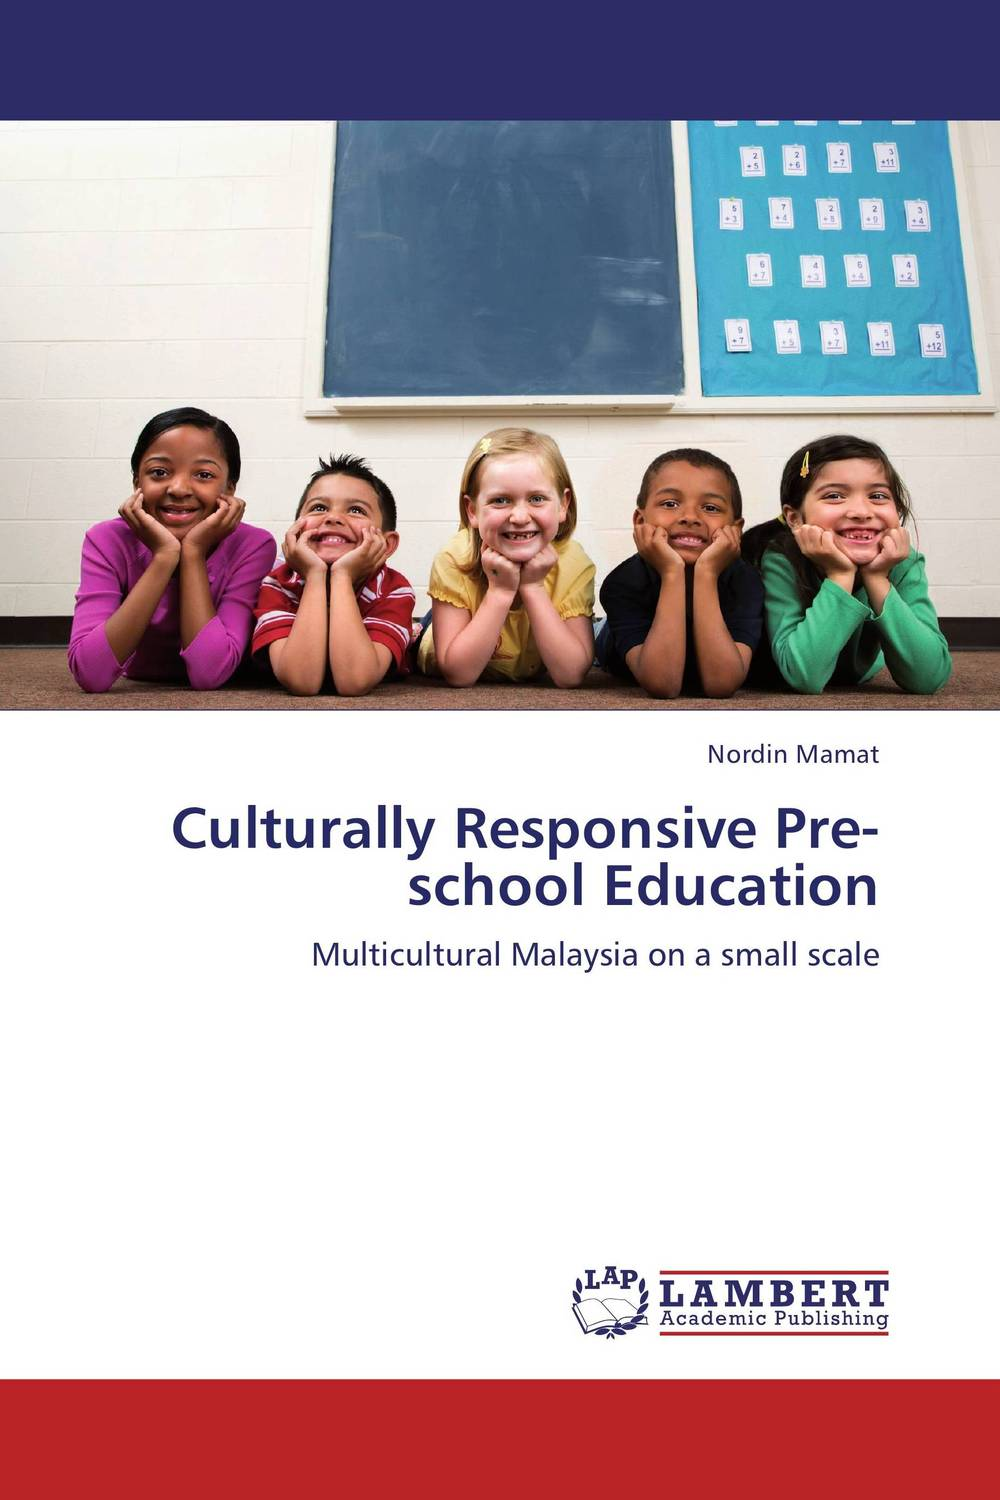 Culturally Responsive Pre-school Education education and multiethnic malaysia